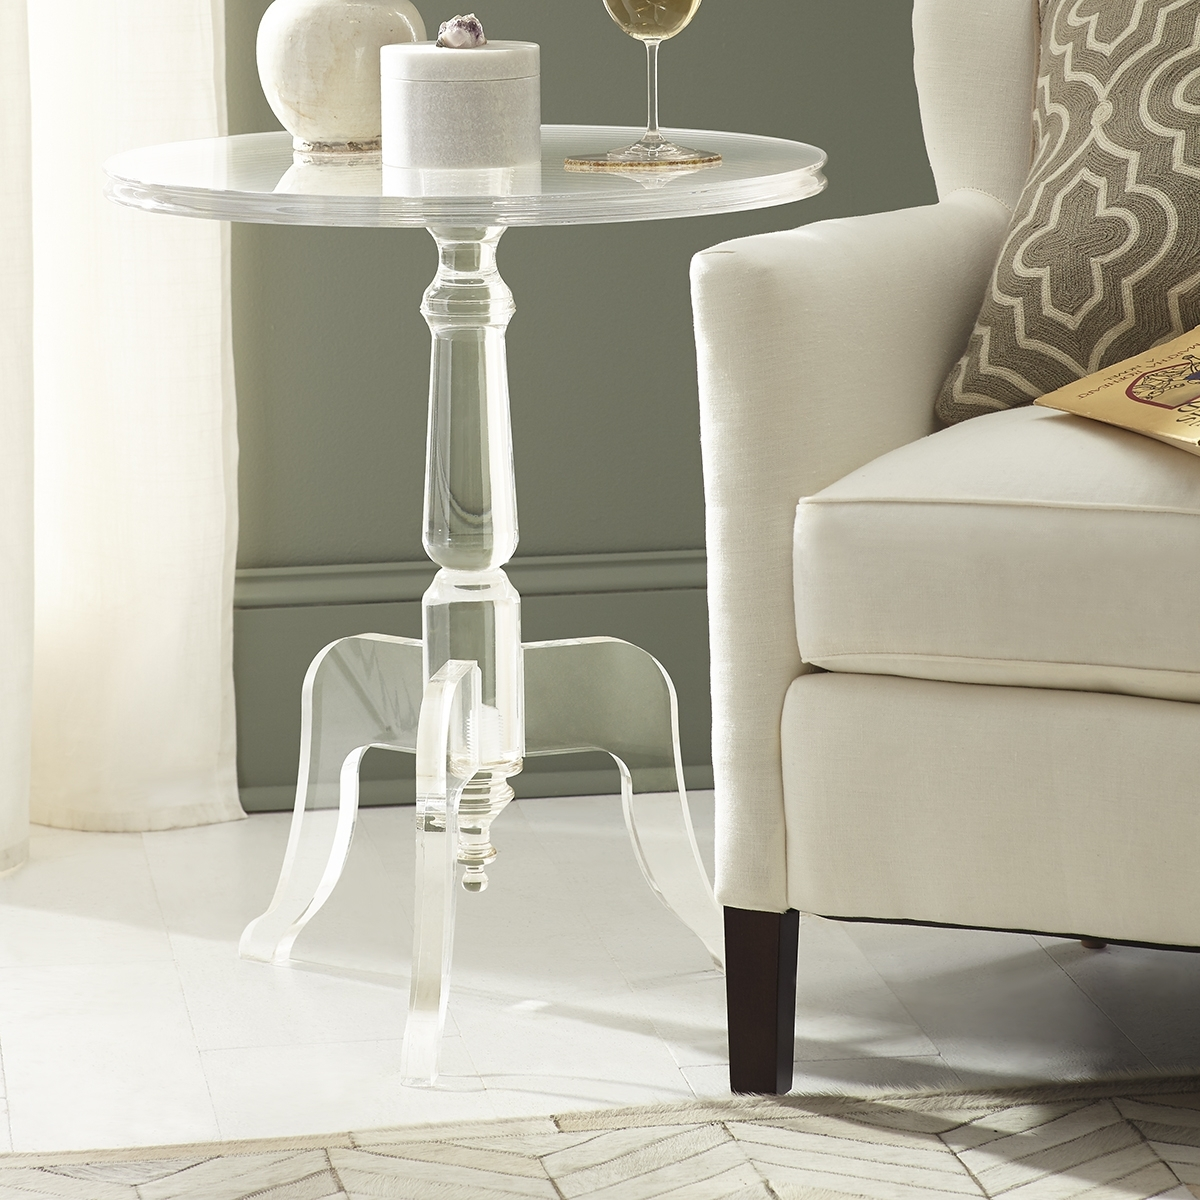 Traditional Ghost Table | Wisteria Within Stately Acrylic Coffee Tables (View 28 of 30)